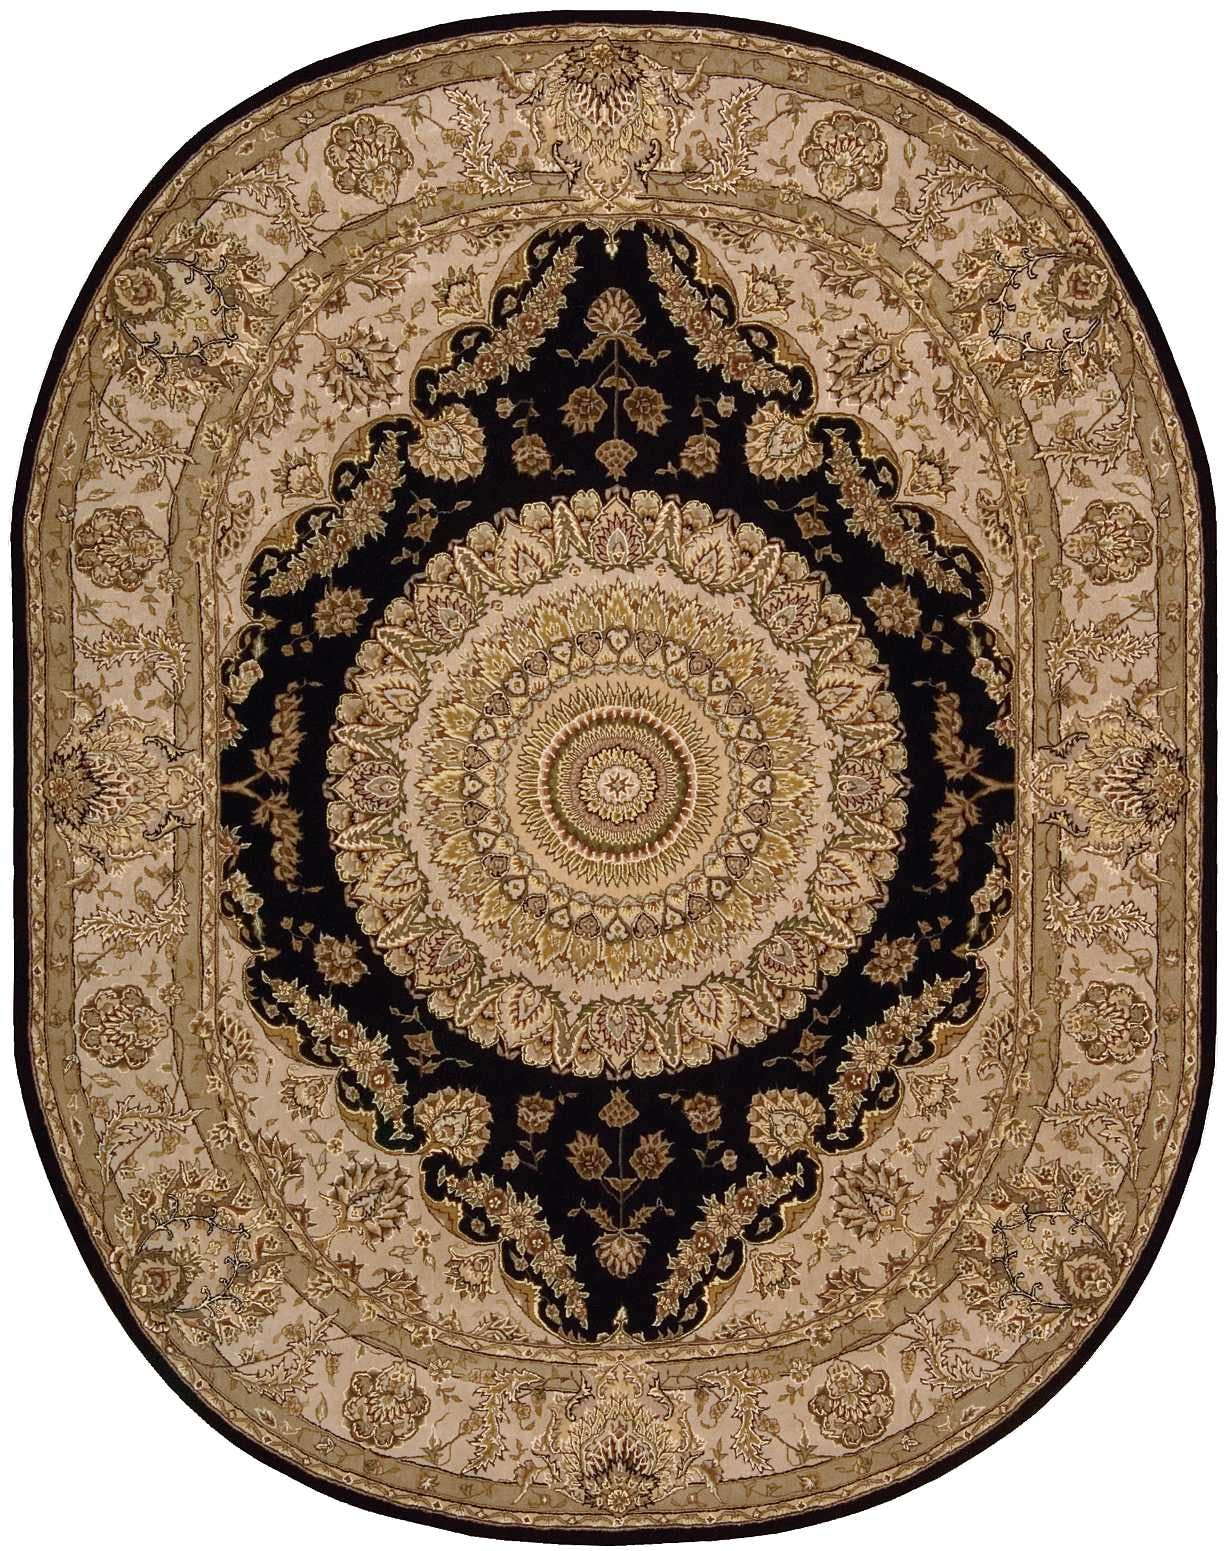 Image of: Nourison Floor Coverings 2000 2233 Black 10 Oval Area Rug 099446535542 Aminis